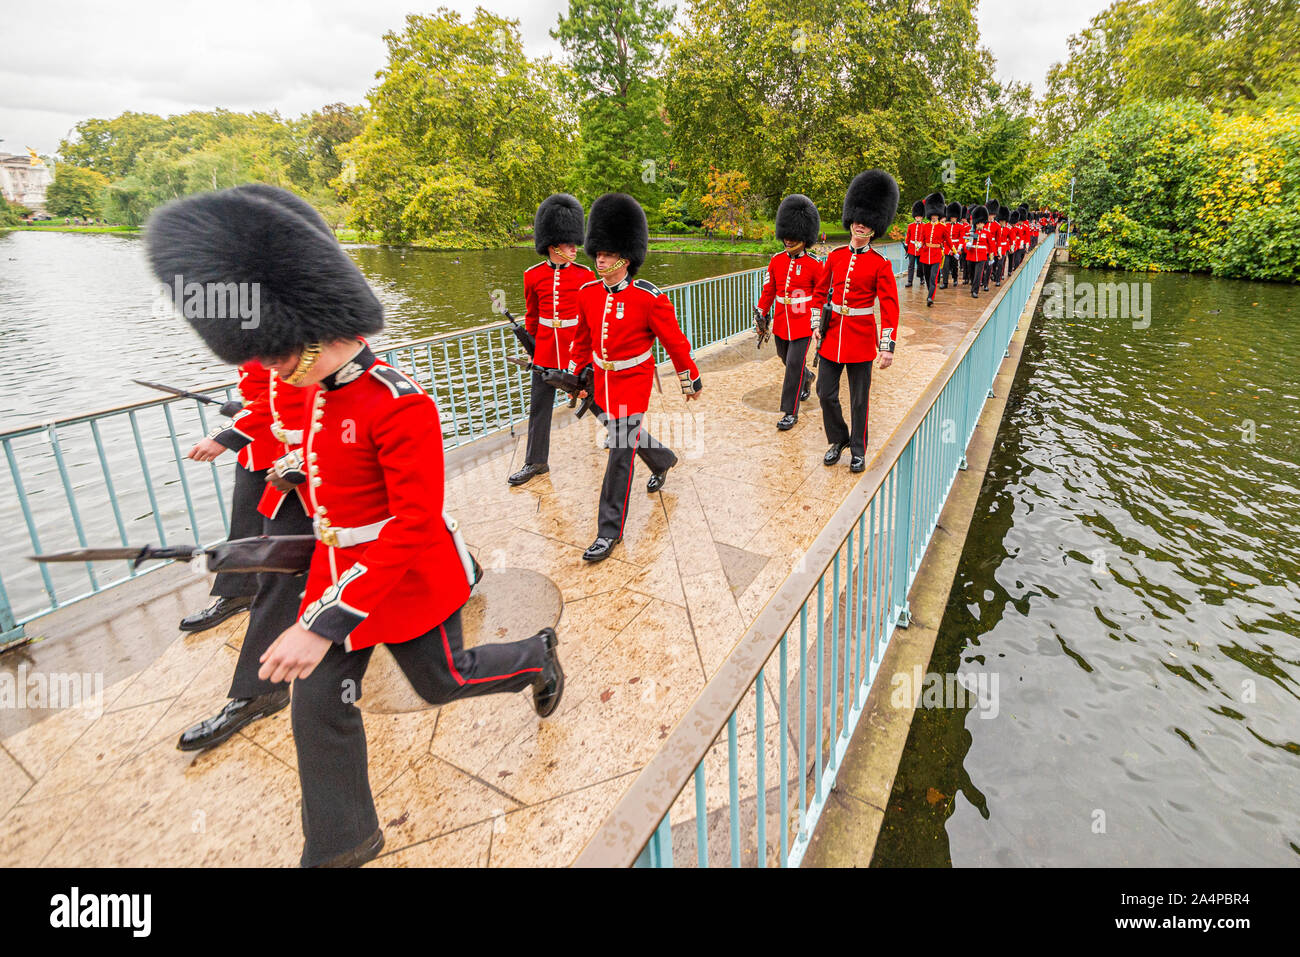 british-army-guards-breaking-step-crossing-the-blue-bridge-in-st-jamess-park-near-buckingham-palace-after-the-state-opening-of-parliament-london-uk-2A4PBR4.jpg